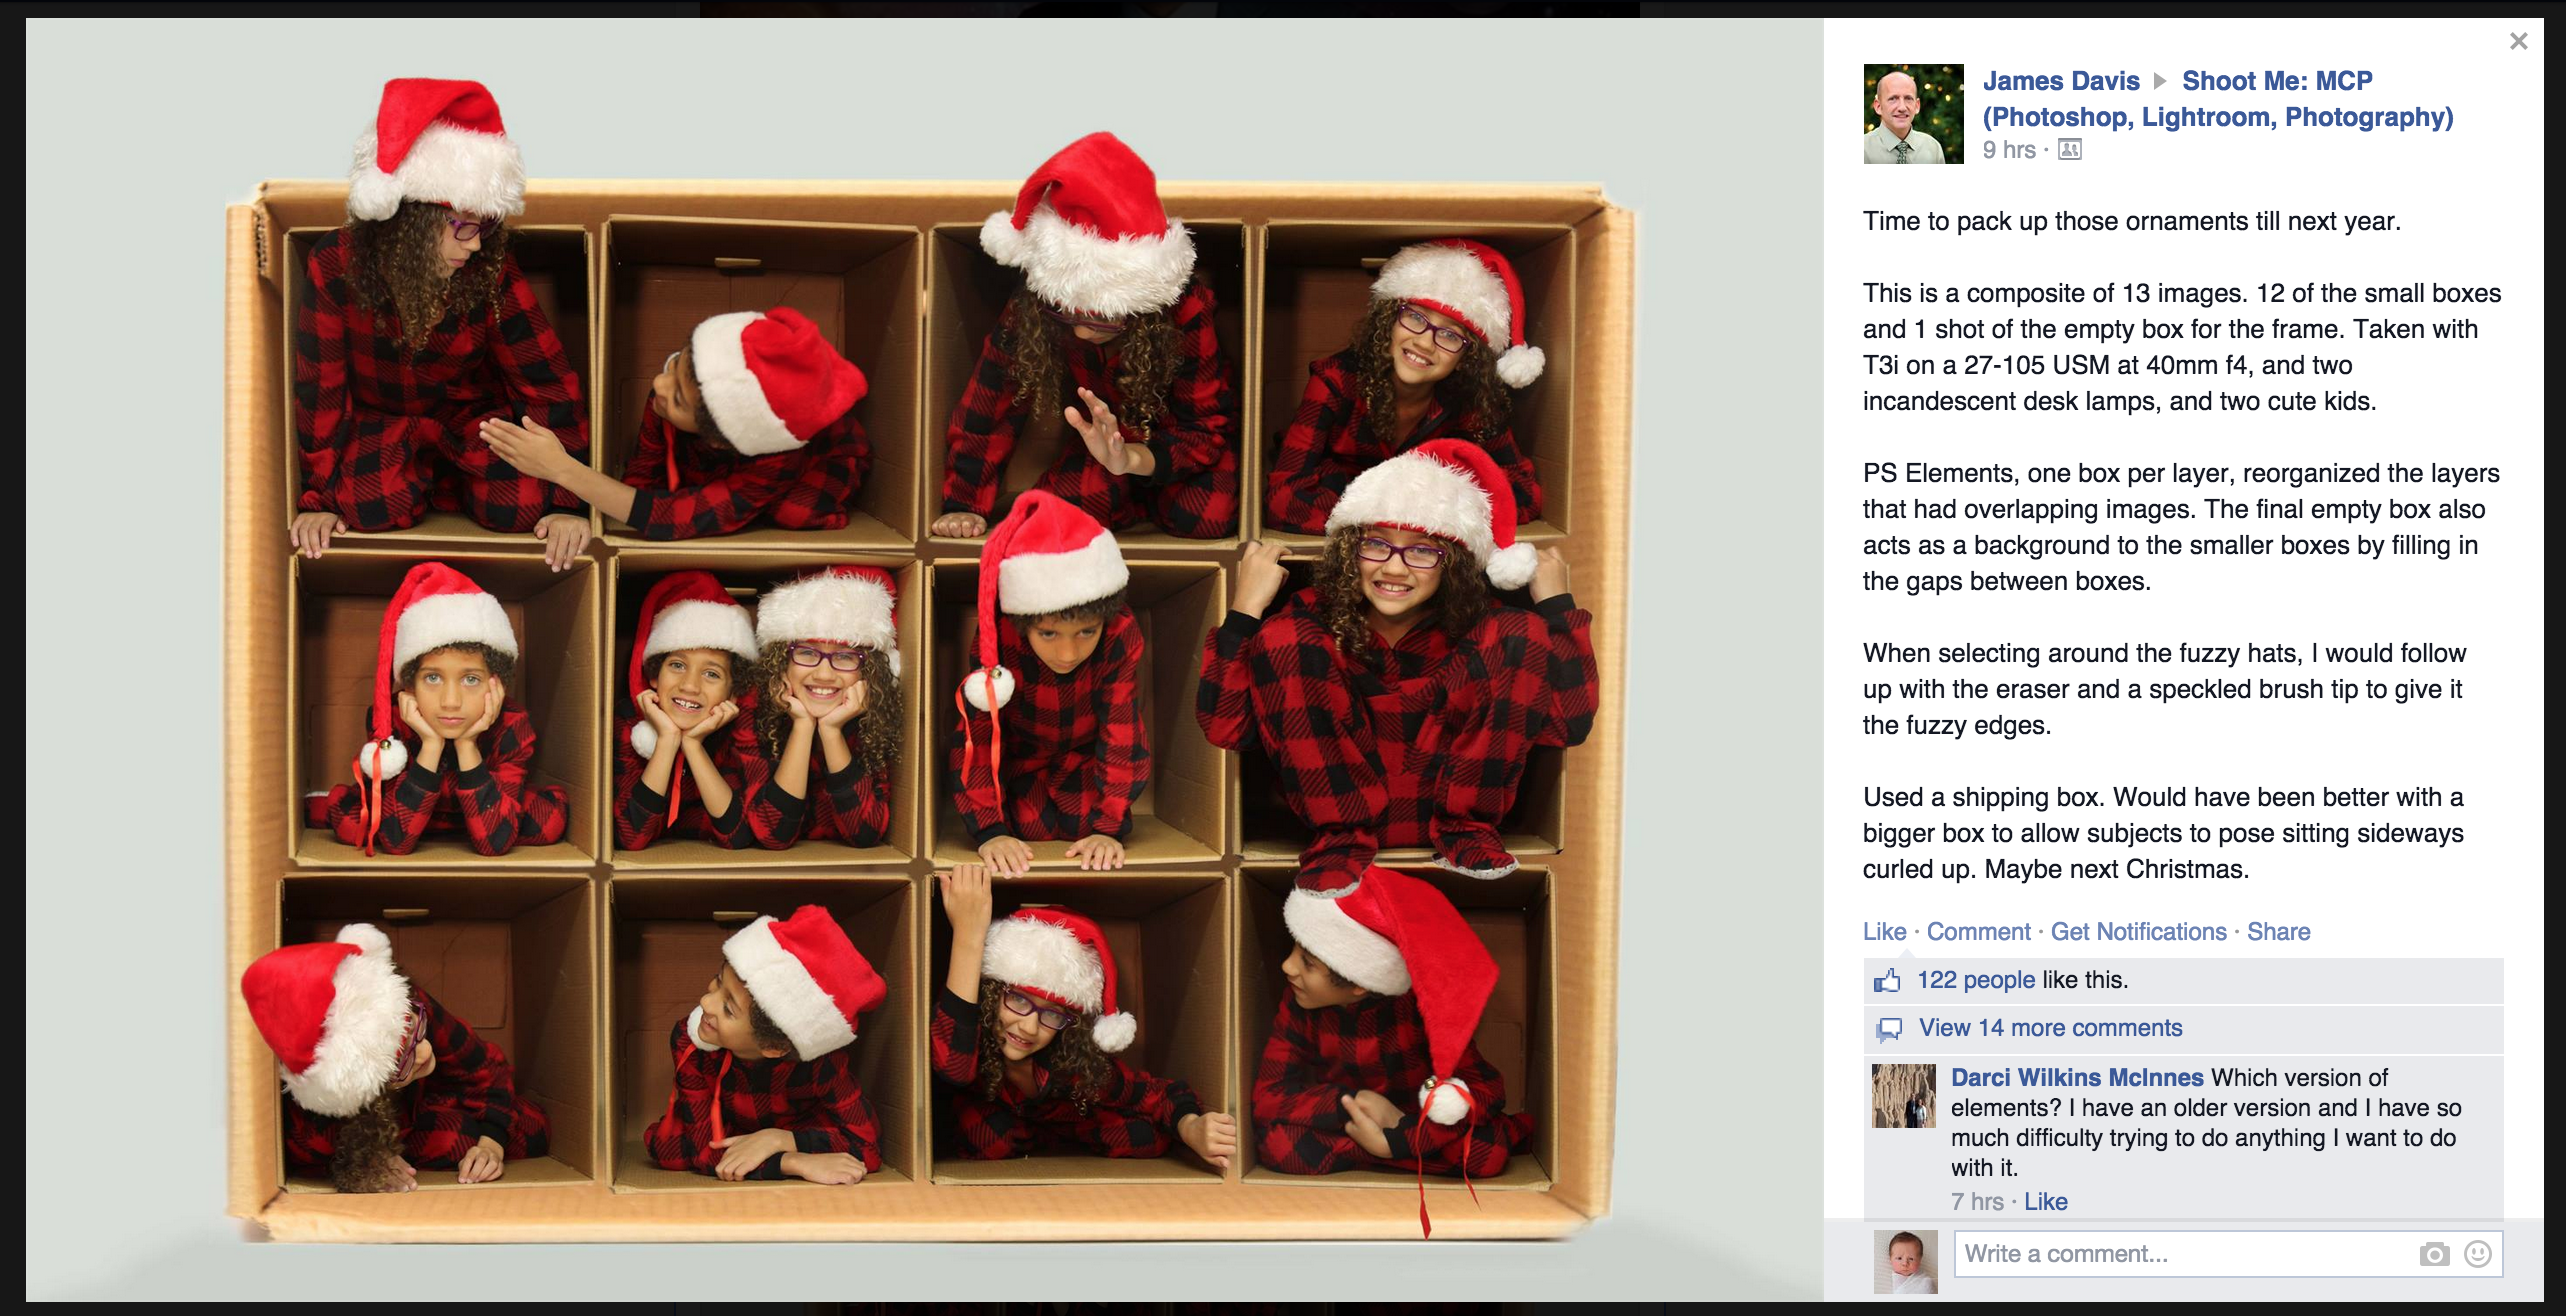 Cute Christmas Card posite idea